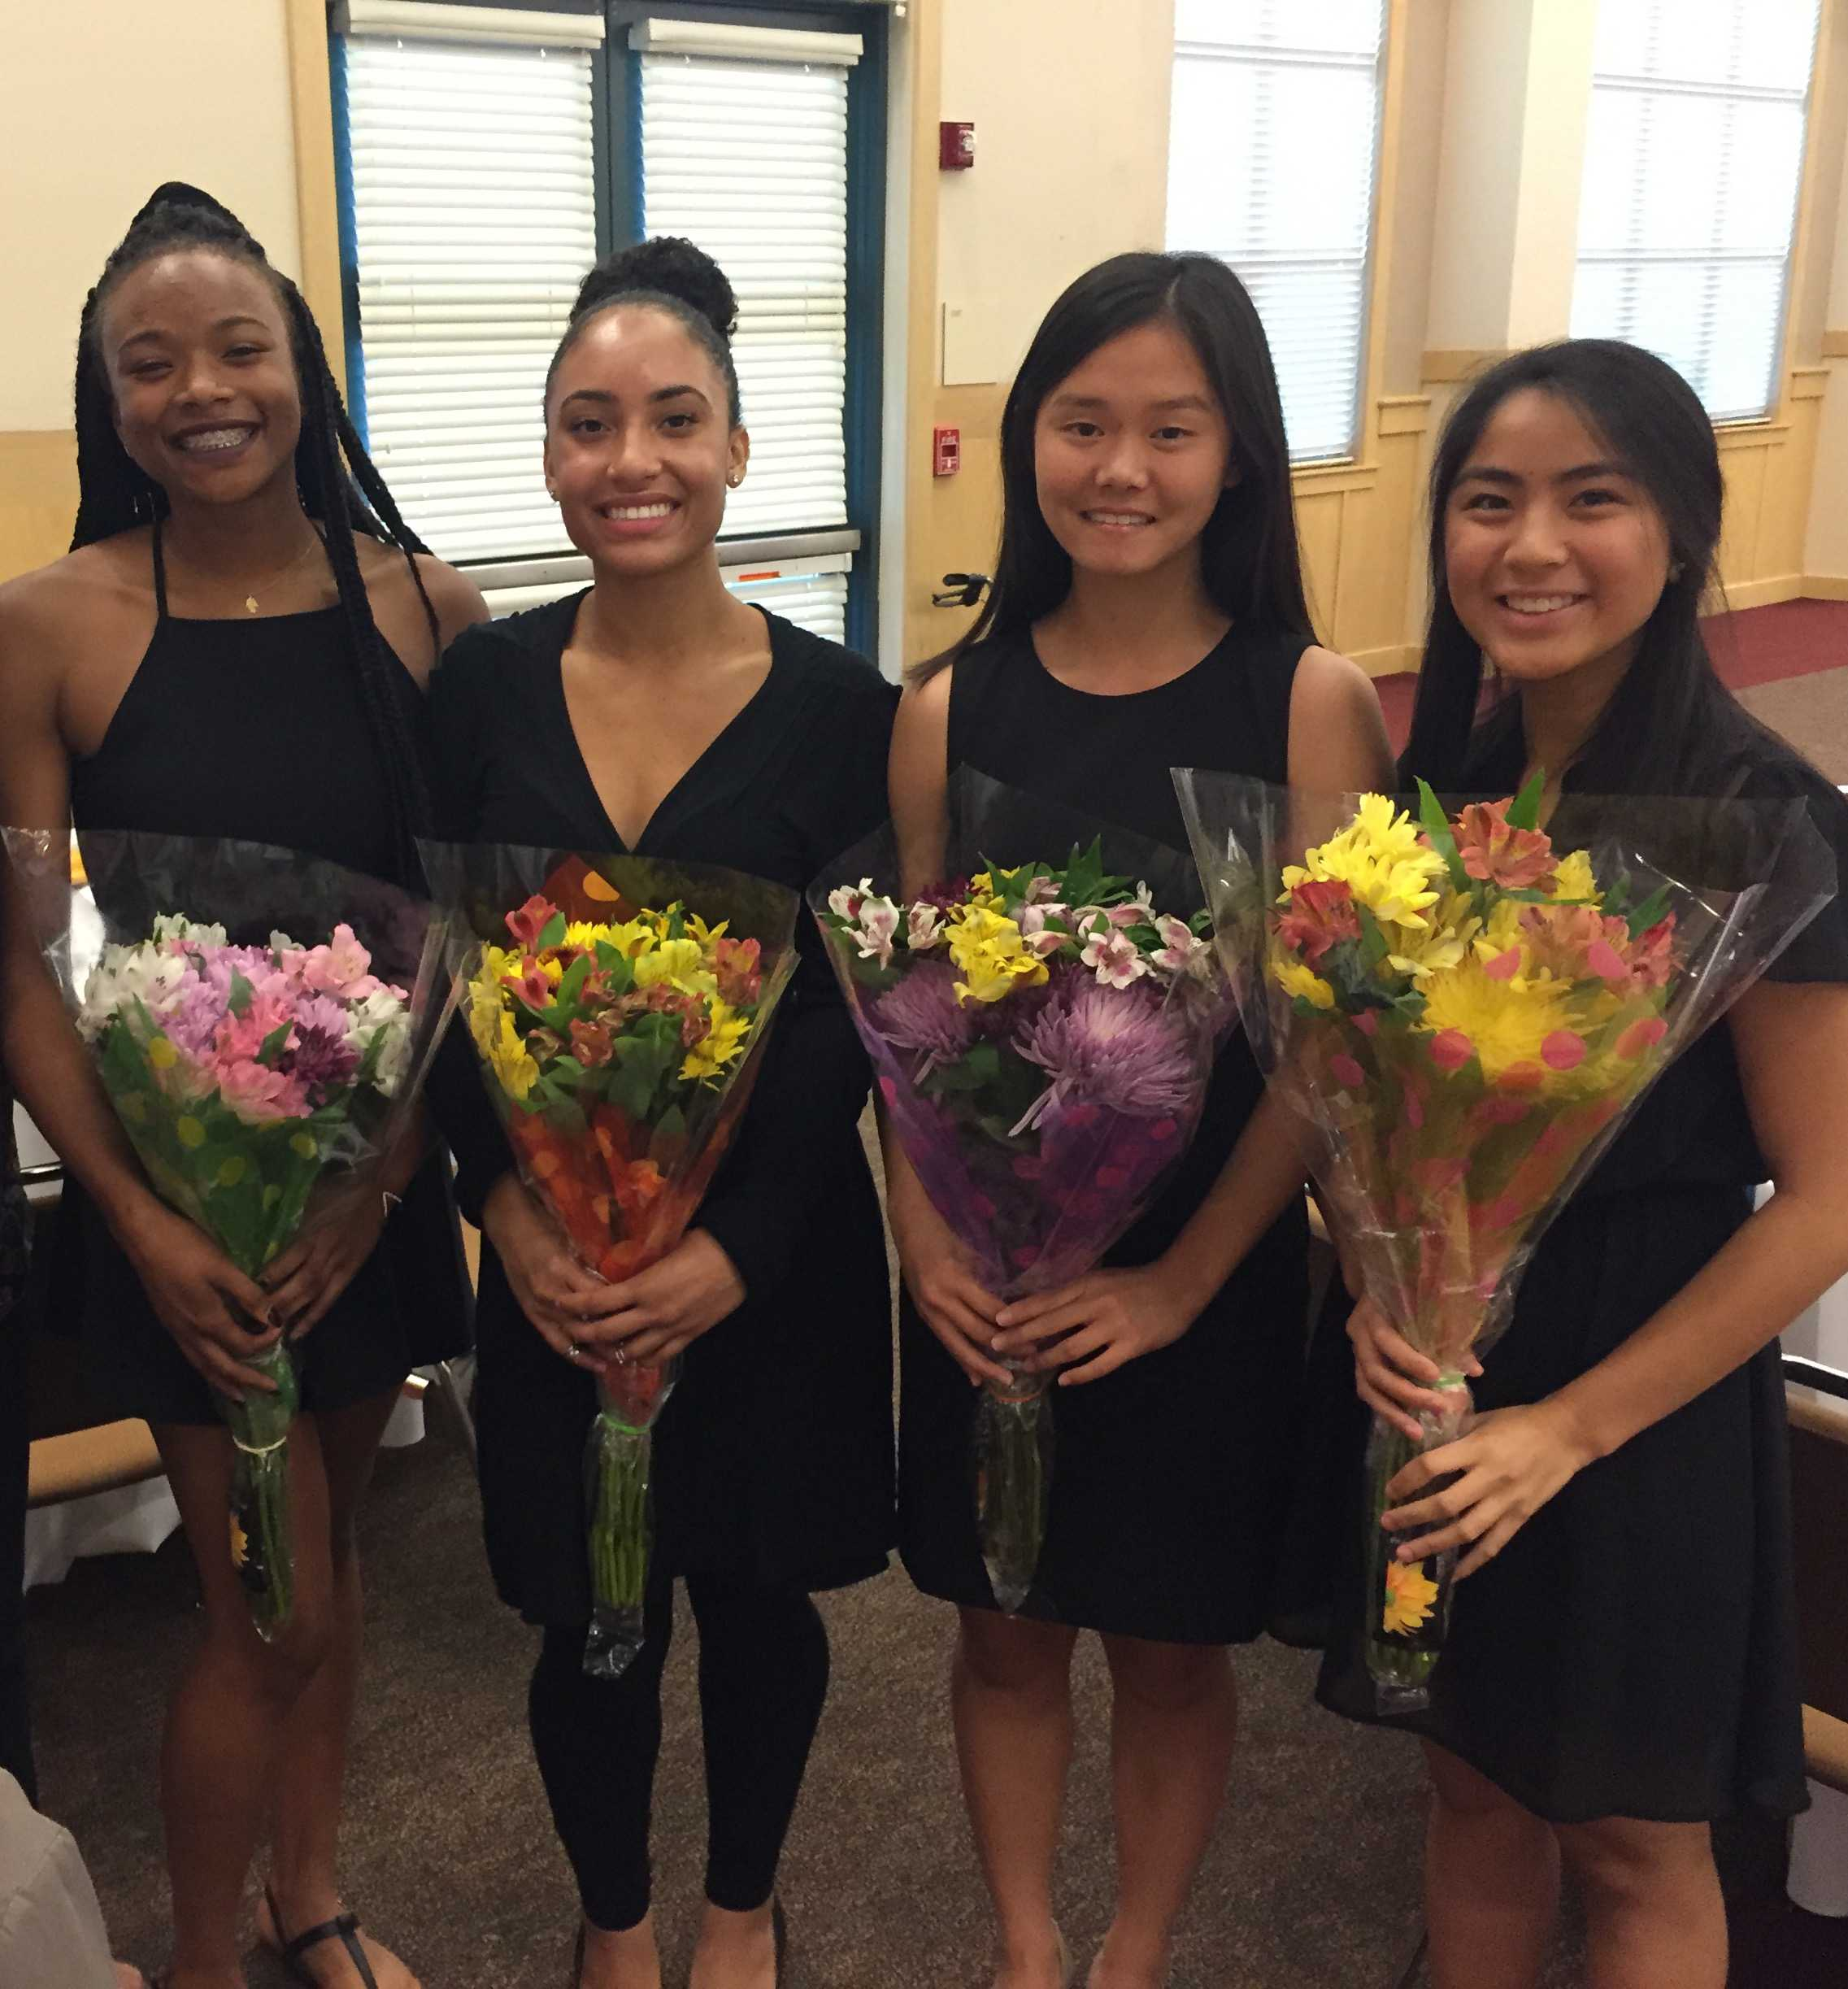 The students in the photo (from left to right) are Munachi Esomonu (Foothill), Mikai Lewis (Foothill), Nicole Zhang (Amador), and Samantha Corpuz (Amador). They were honored for founding SIAC over the summer of 2015.